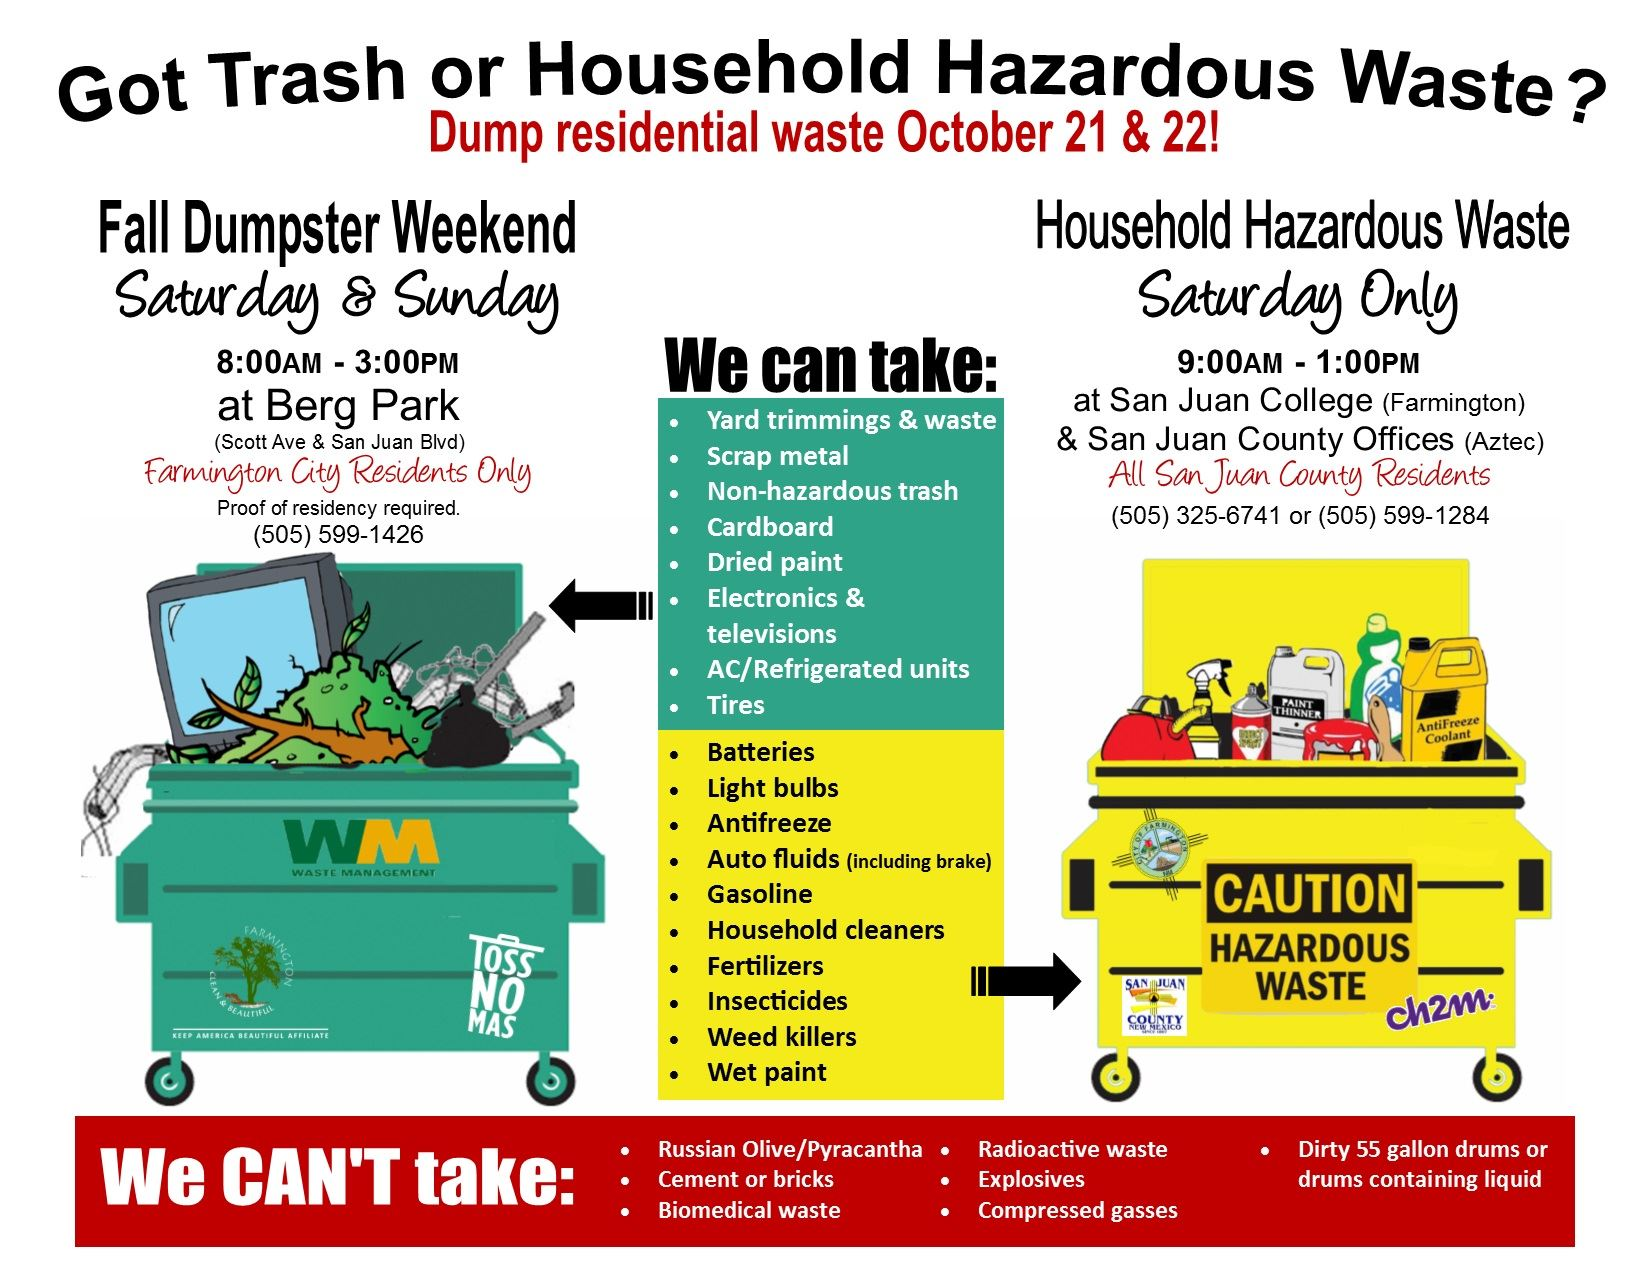 dumpster-weekend-hazardous-waste-combo-flyer (3)